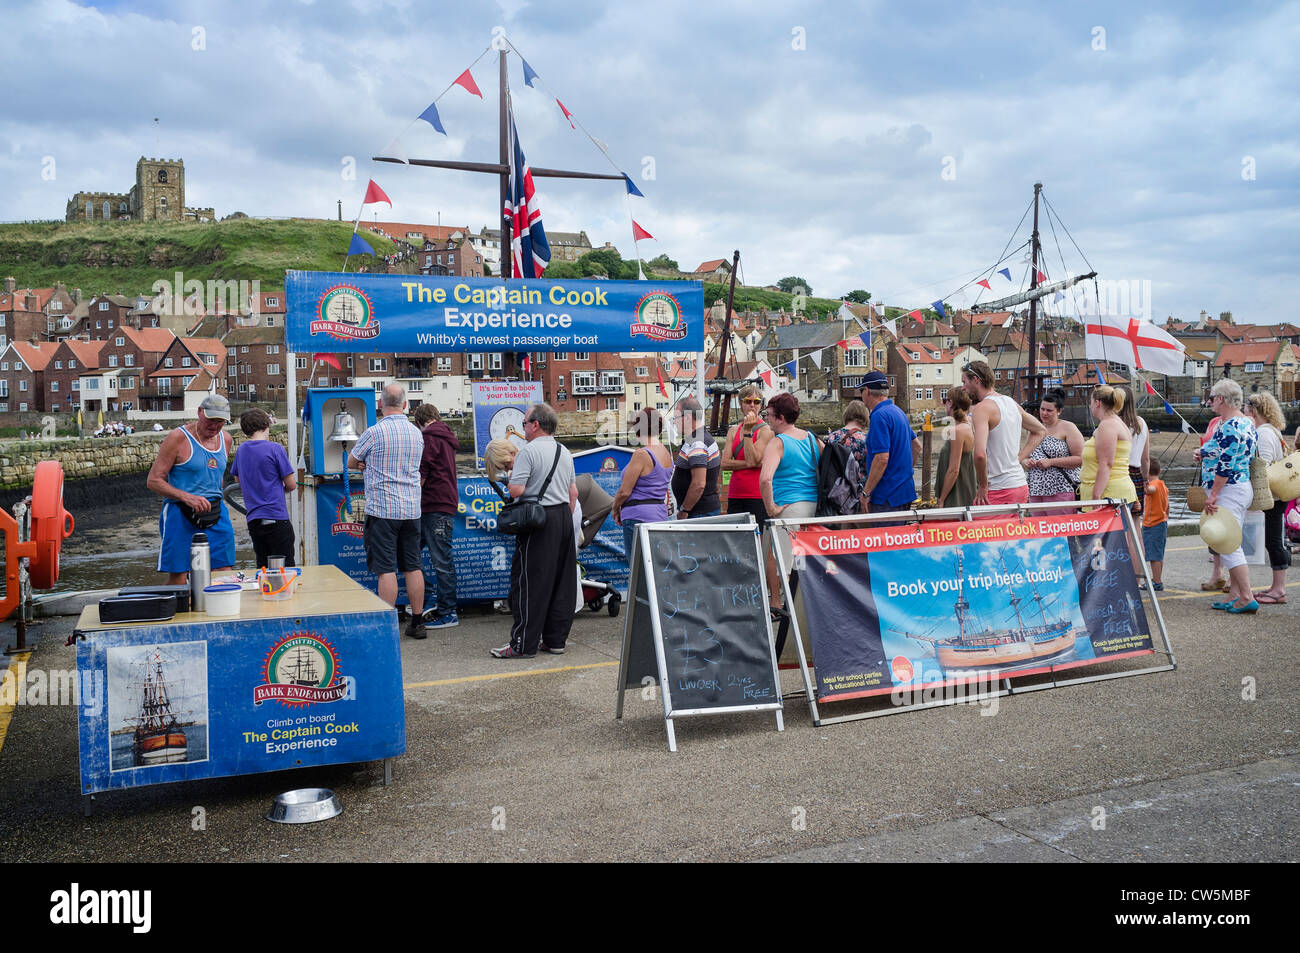 Holidaymakers queuing for a boat trip at Whitby Harbour - Stock Image